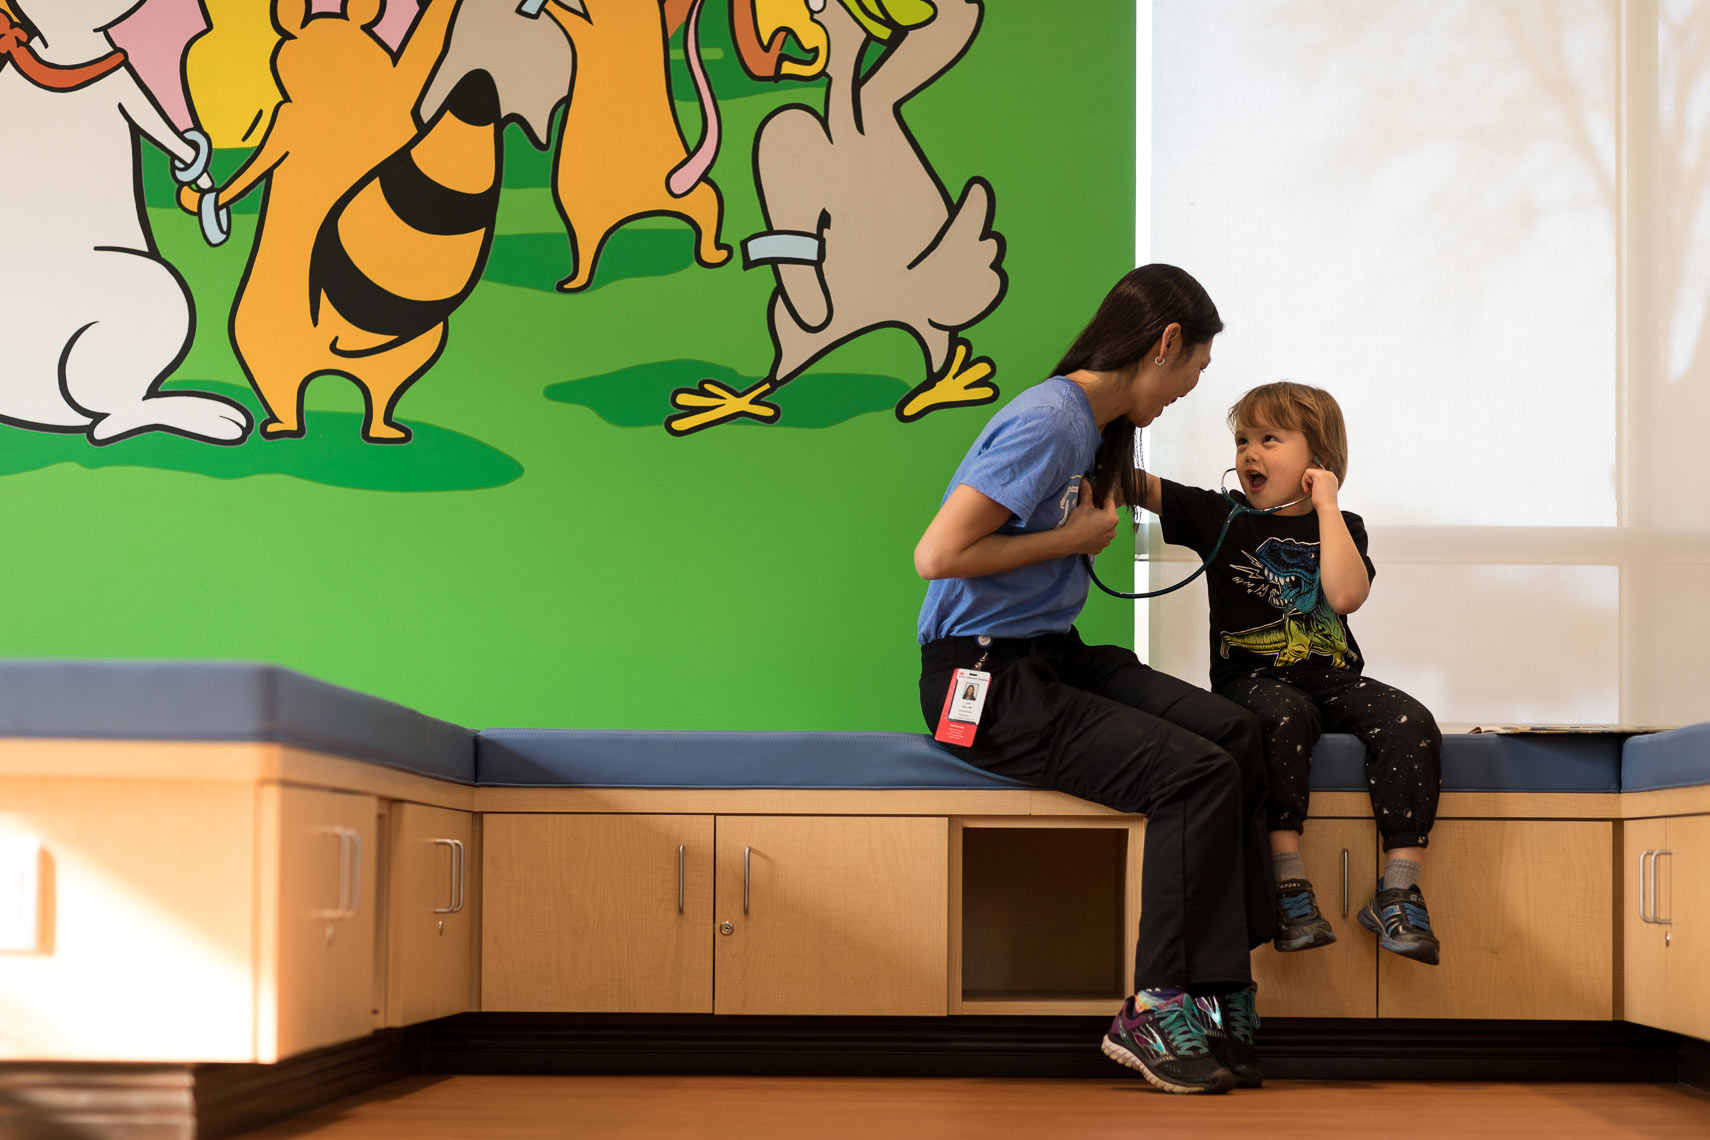 texas-childrens-hospital-austin-jason-risner-photography-3976